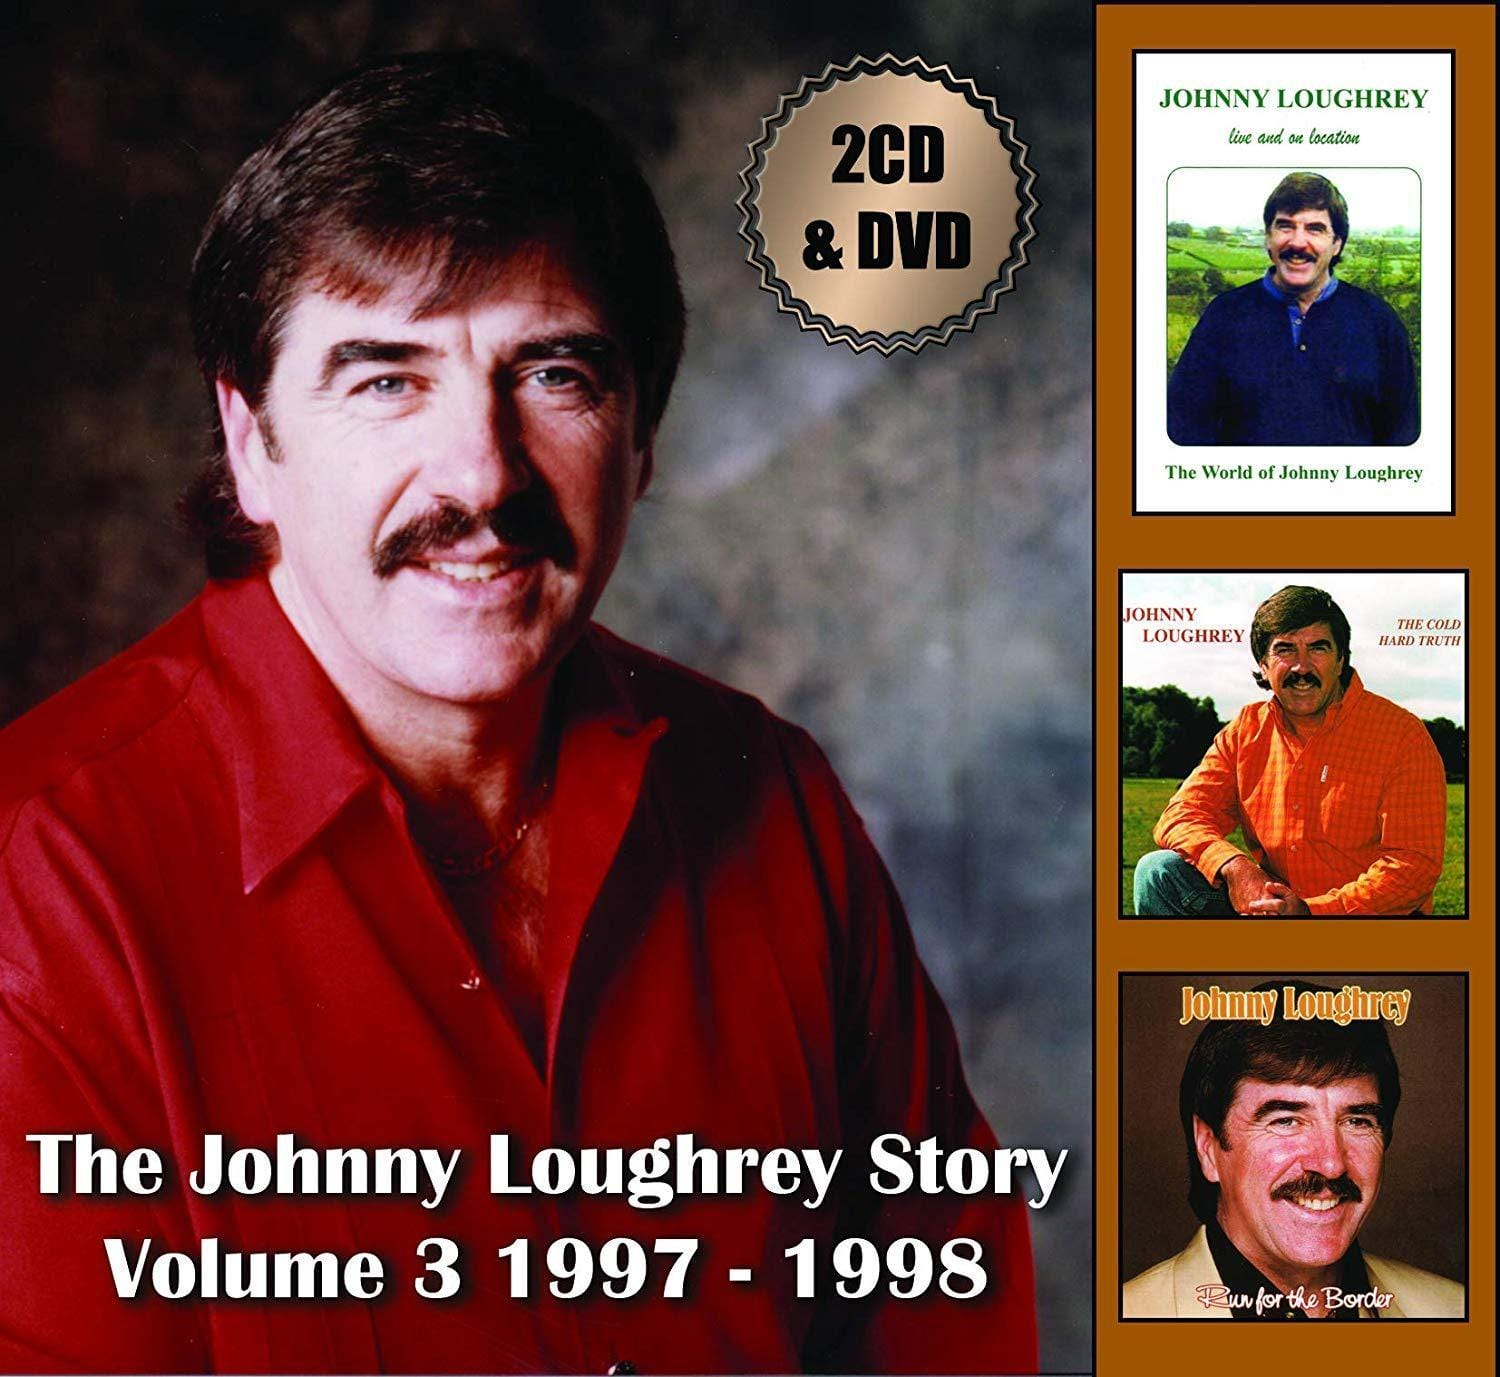 JOHNNY LOUGHREY 1997-1998 [CD]